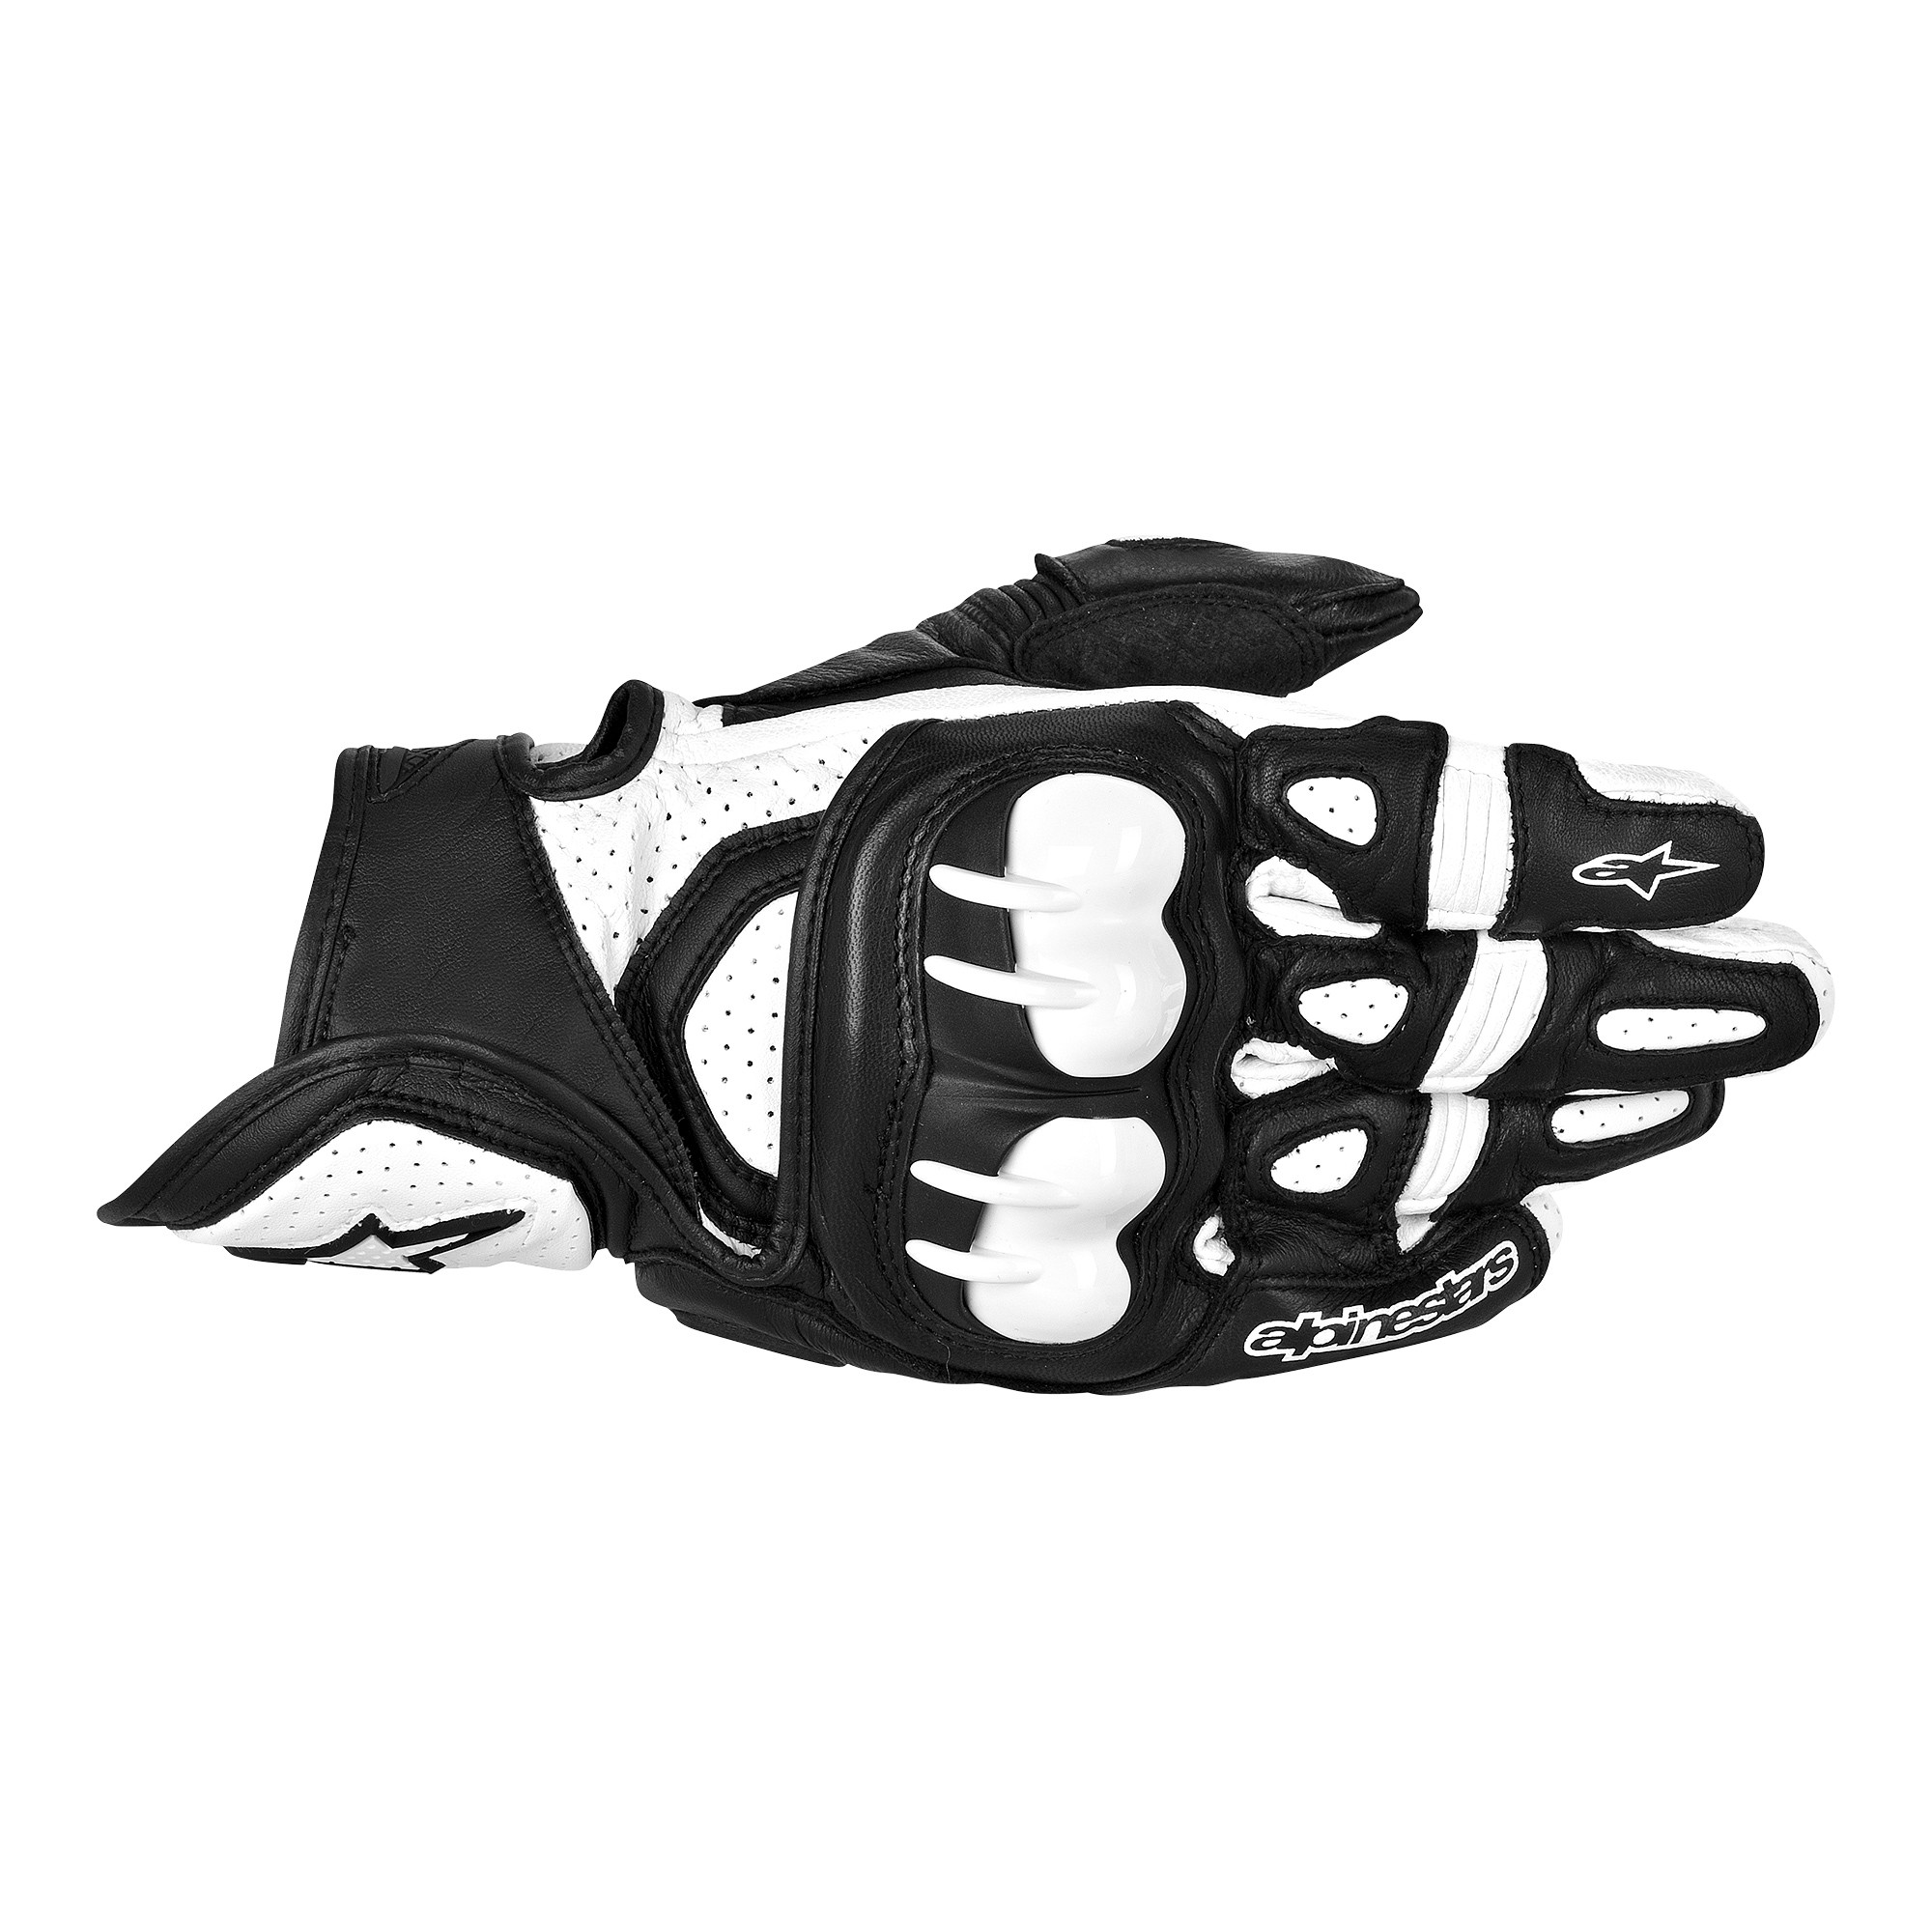 Extra small black leather gloves - Black Gpx Leather Glove Black White